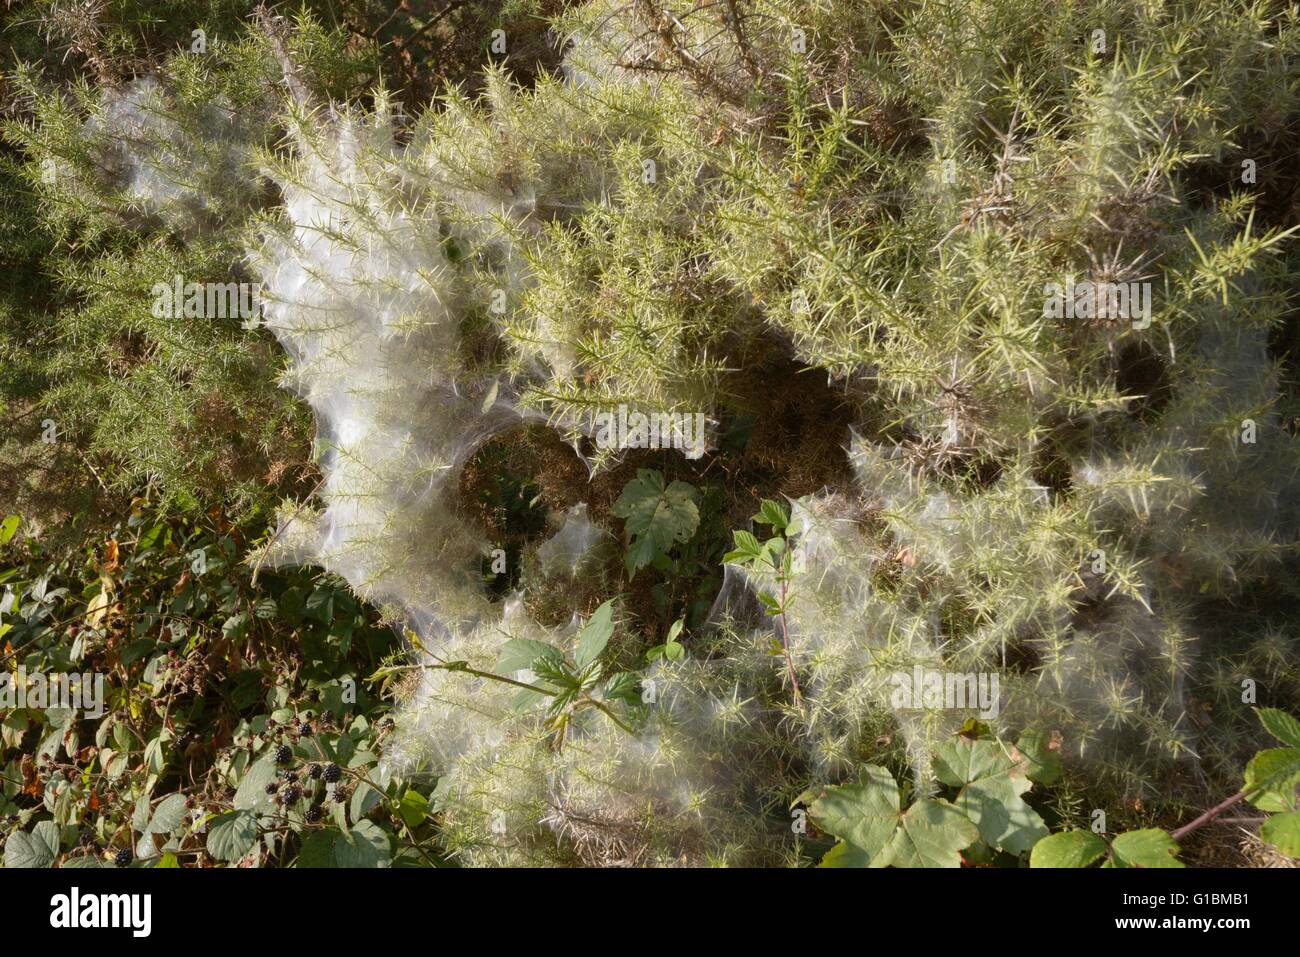 Spider's webs coating Gorse bushes in Autumn, Wales, UK - Stock Image